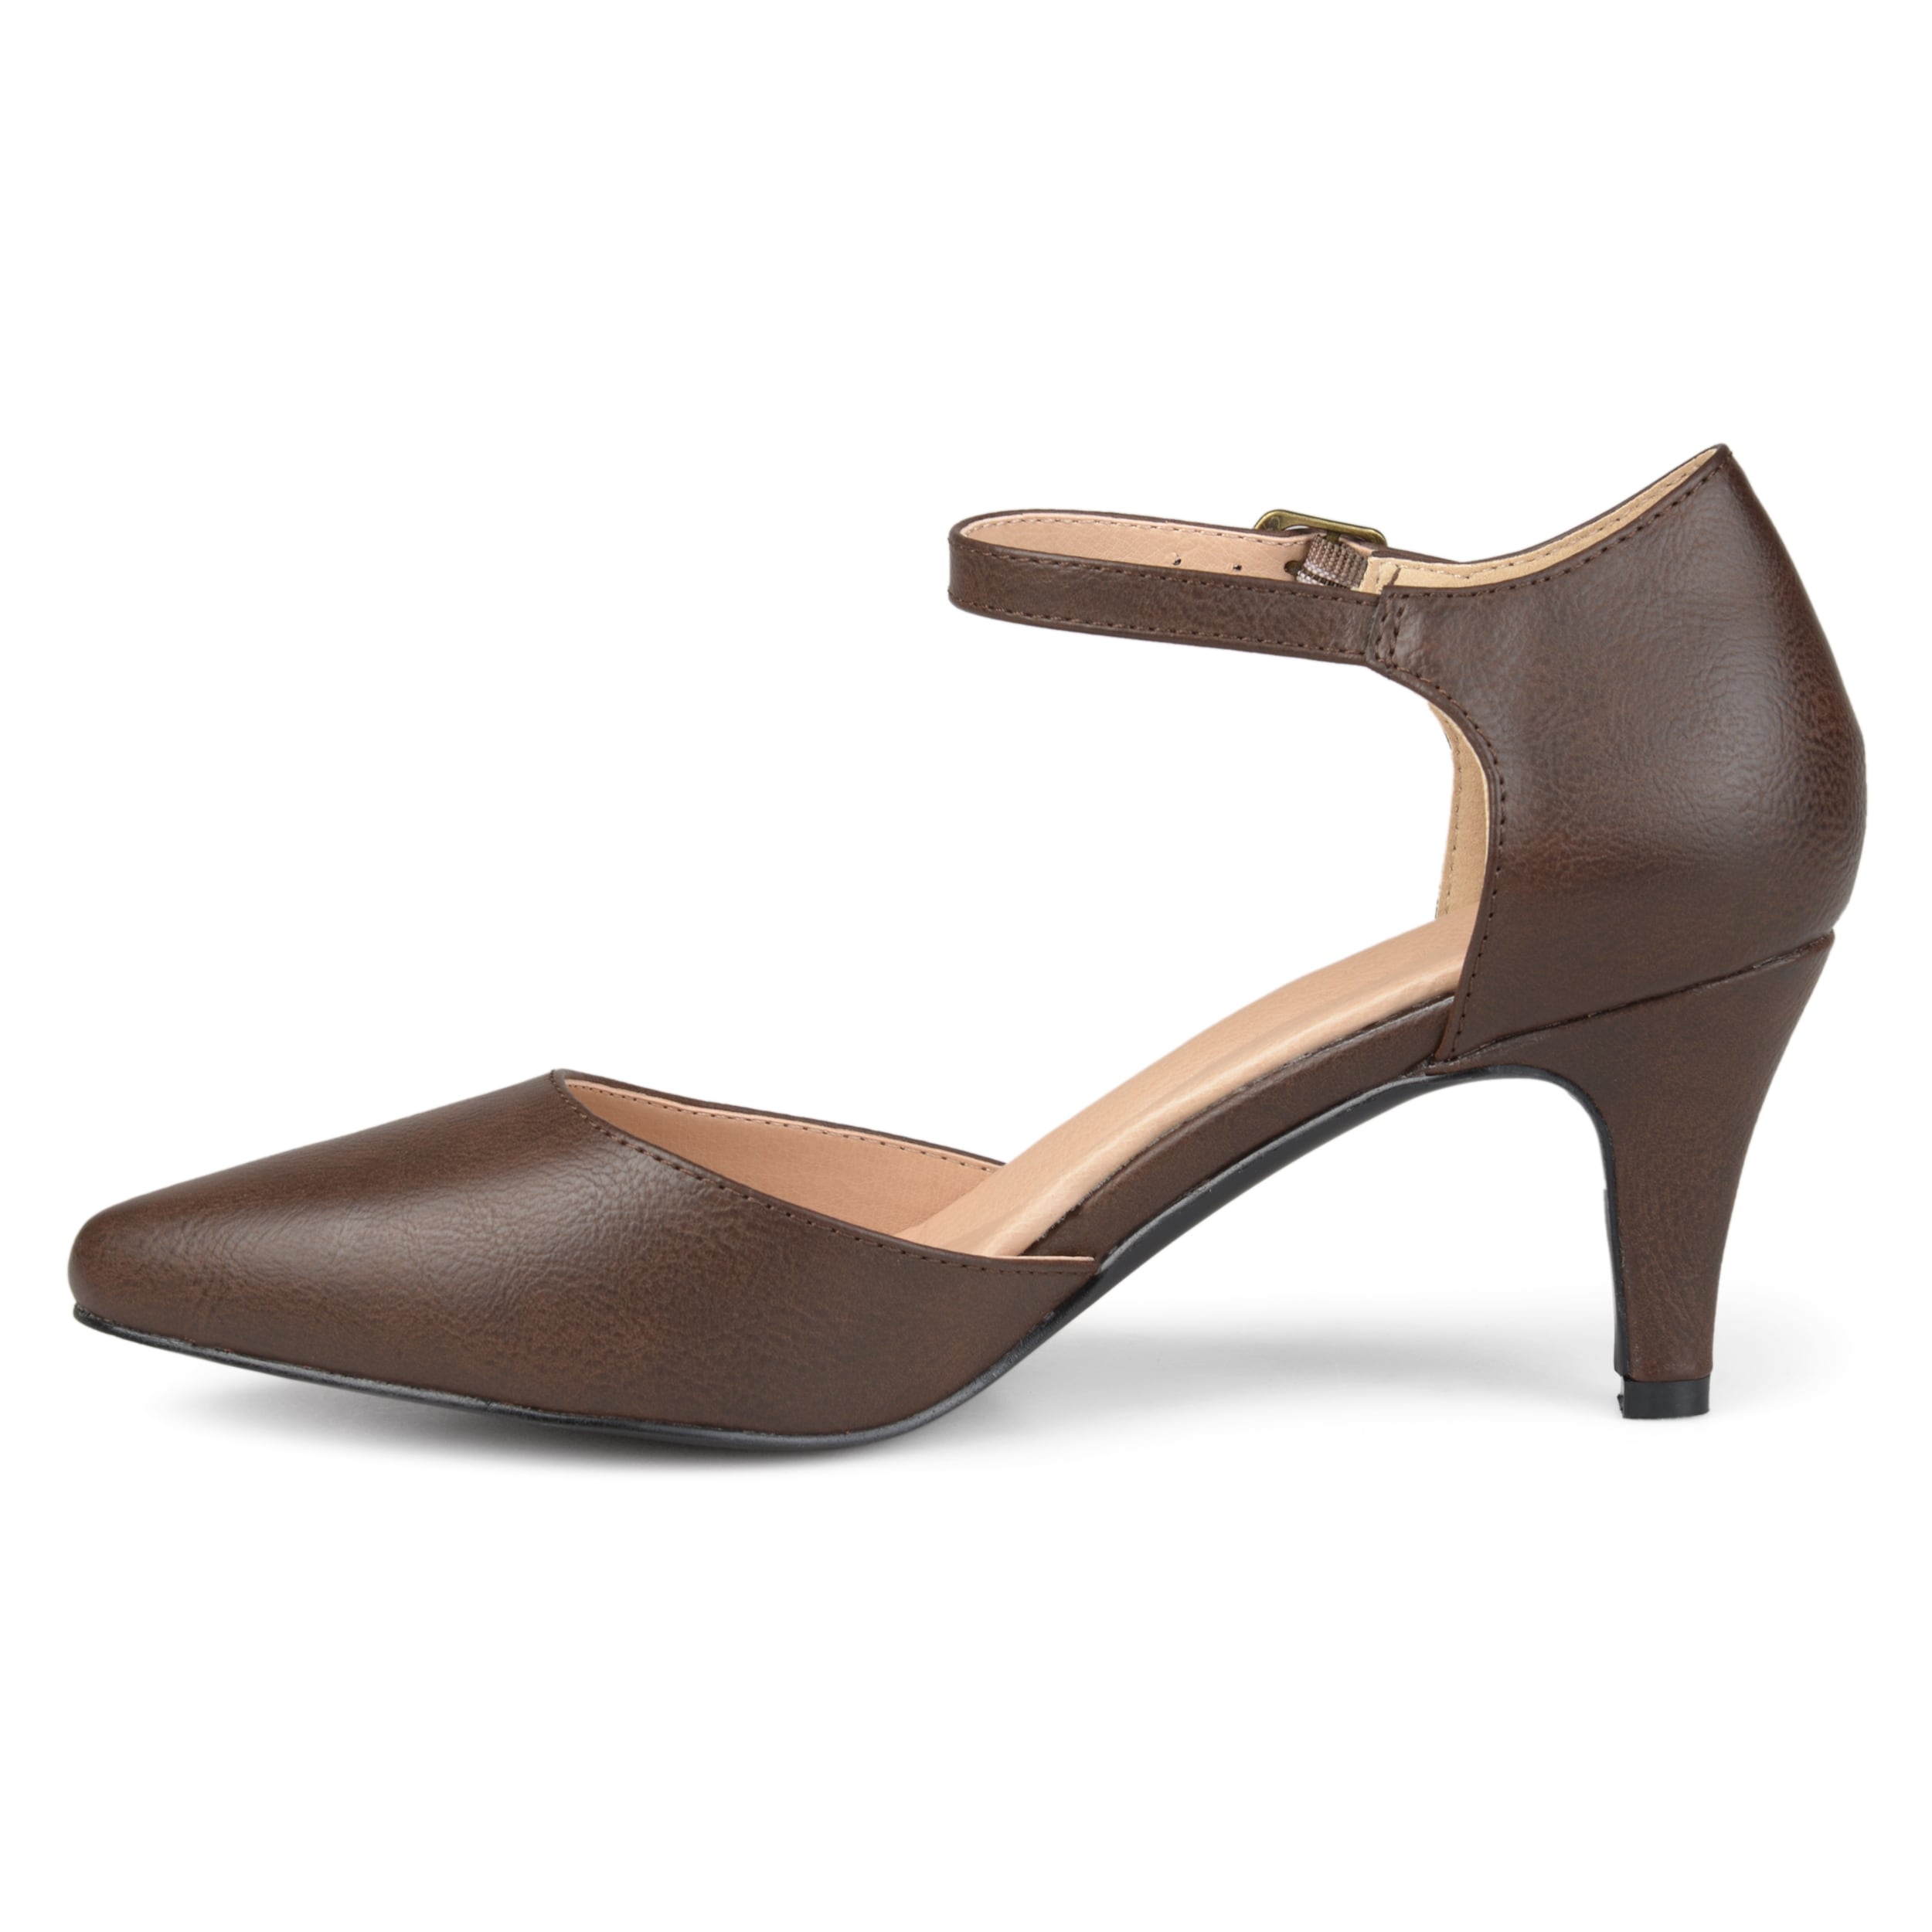 9cd96cb35ee77 Shop Journee Collection Women's 'Bettie' Comfort Sole Almond Toe Ankle  Strap Heels - Free Shipping On Orders Over $45 - Overstock - 17037993